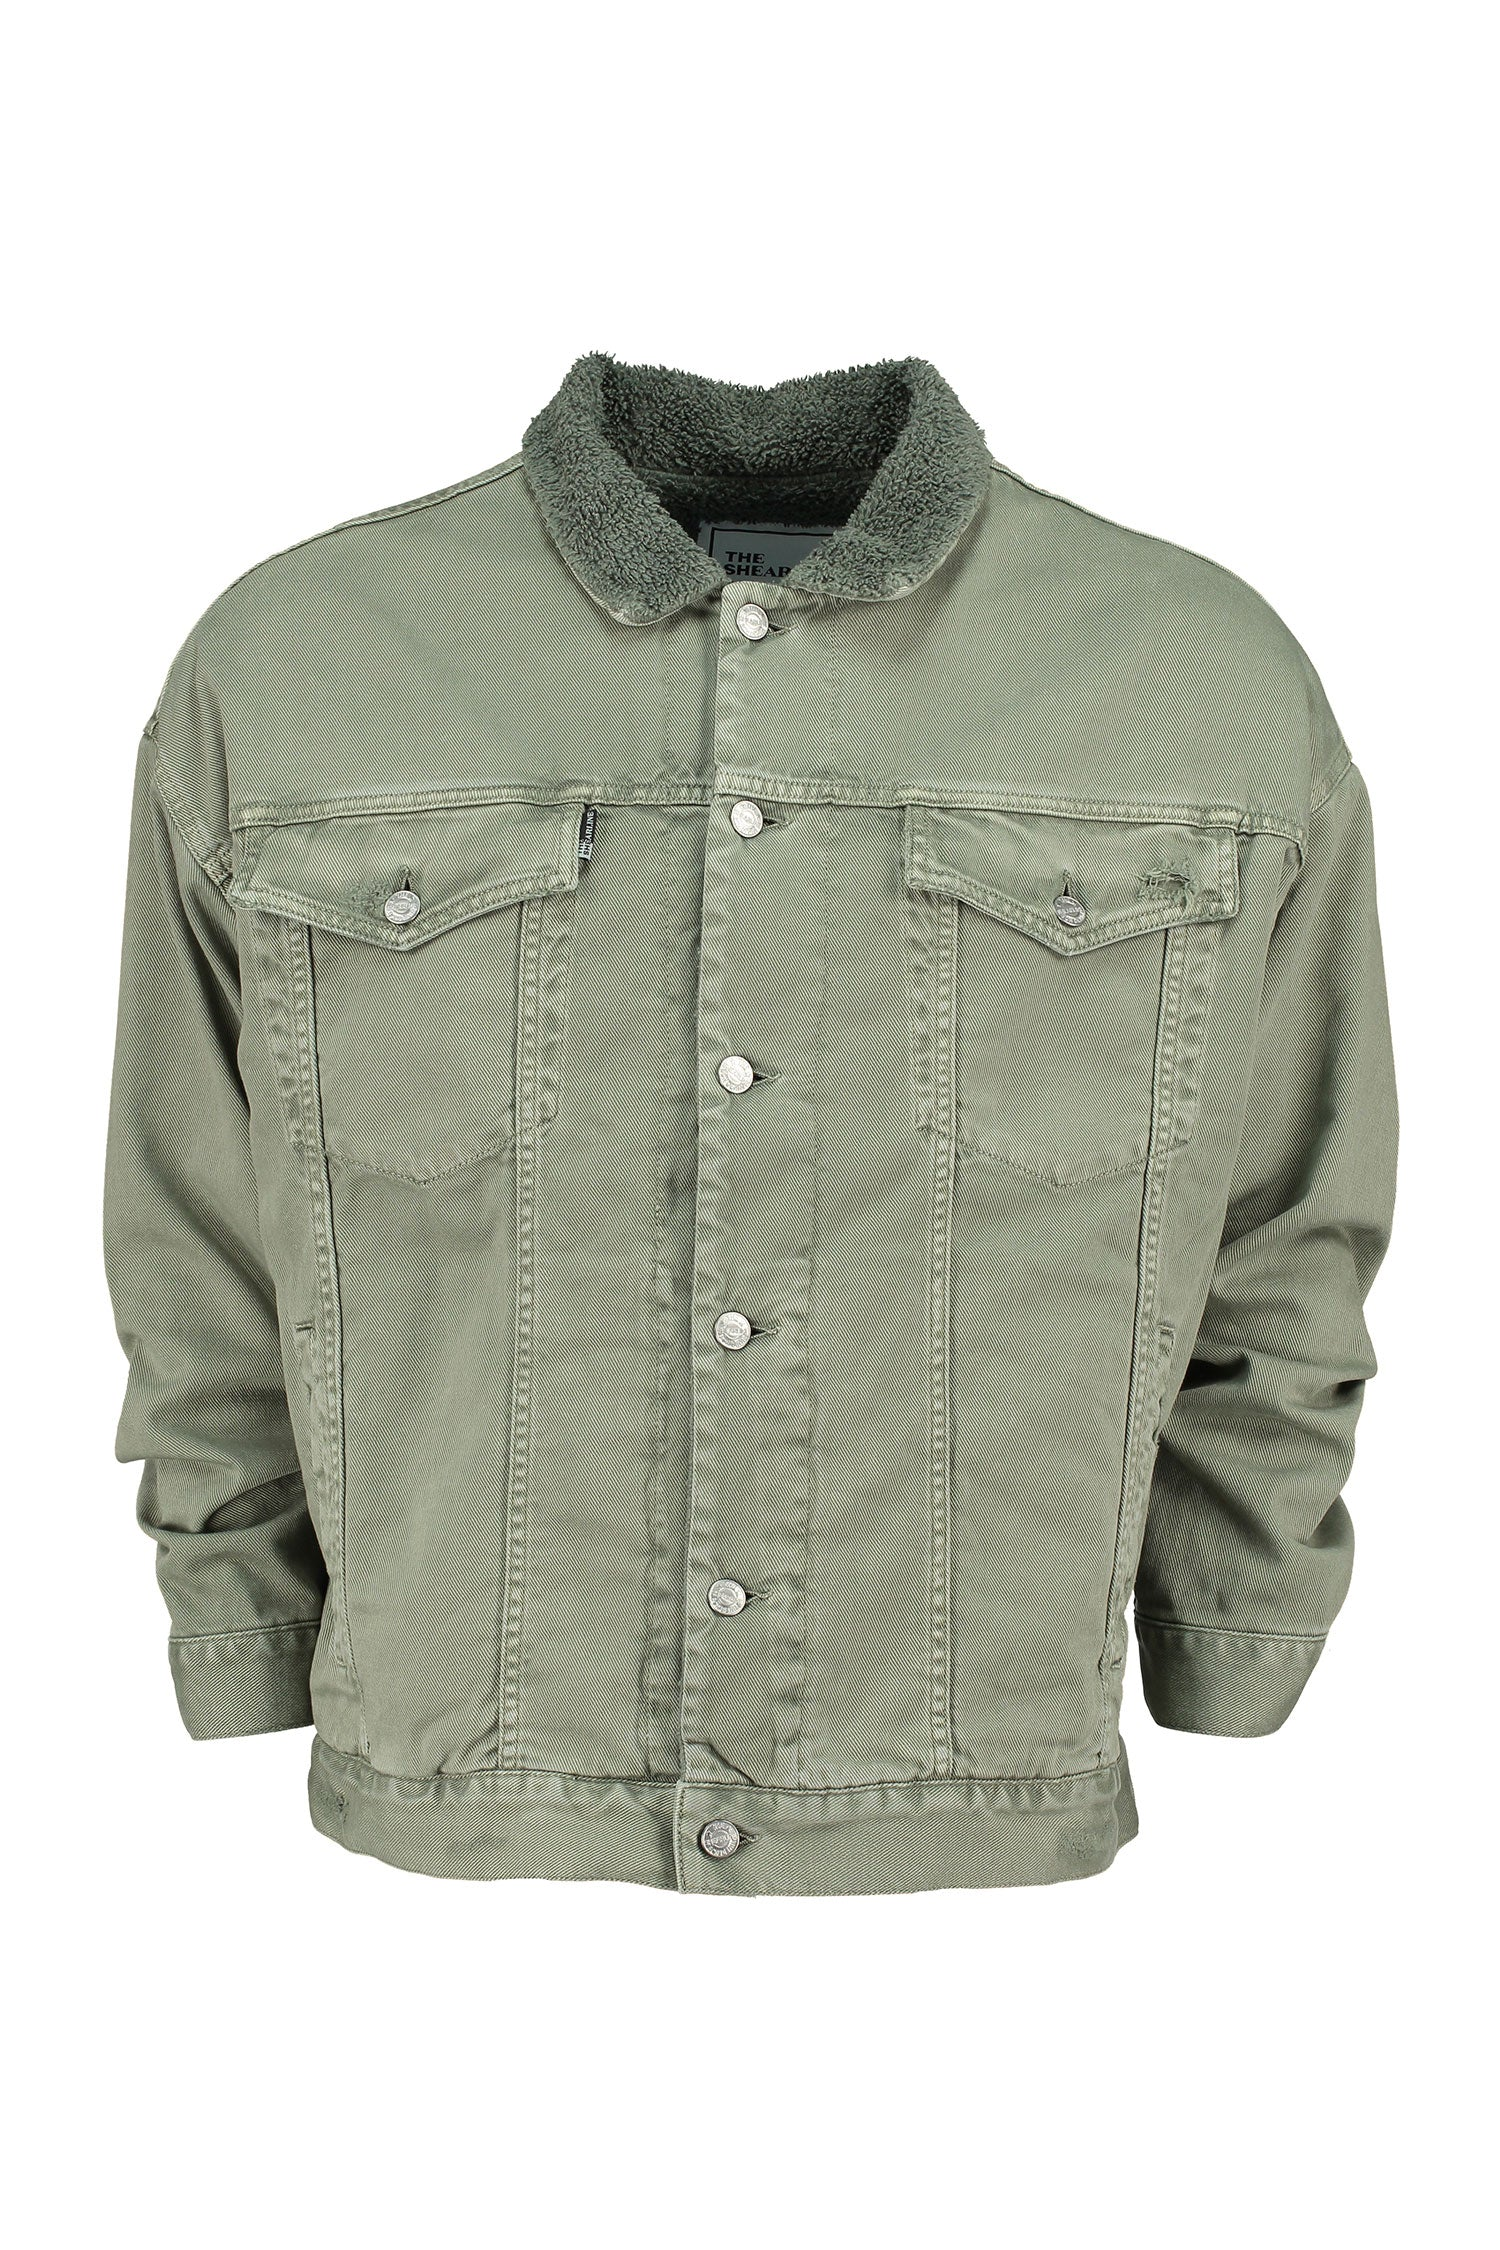 The Shearline Jacket Man Green